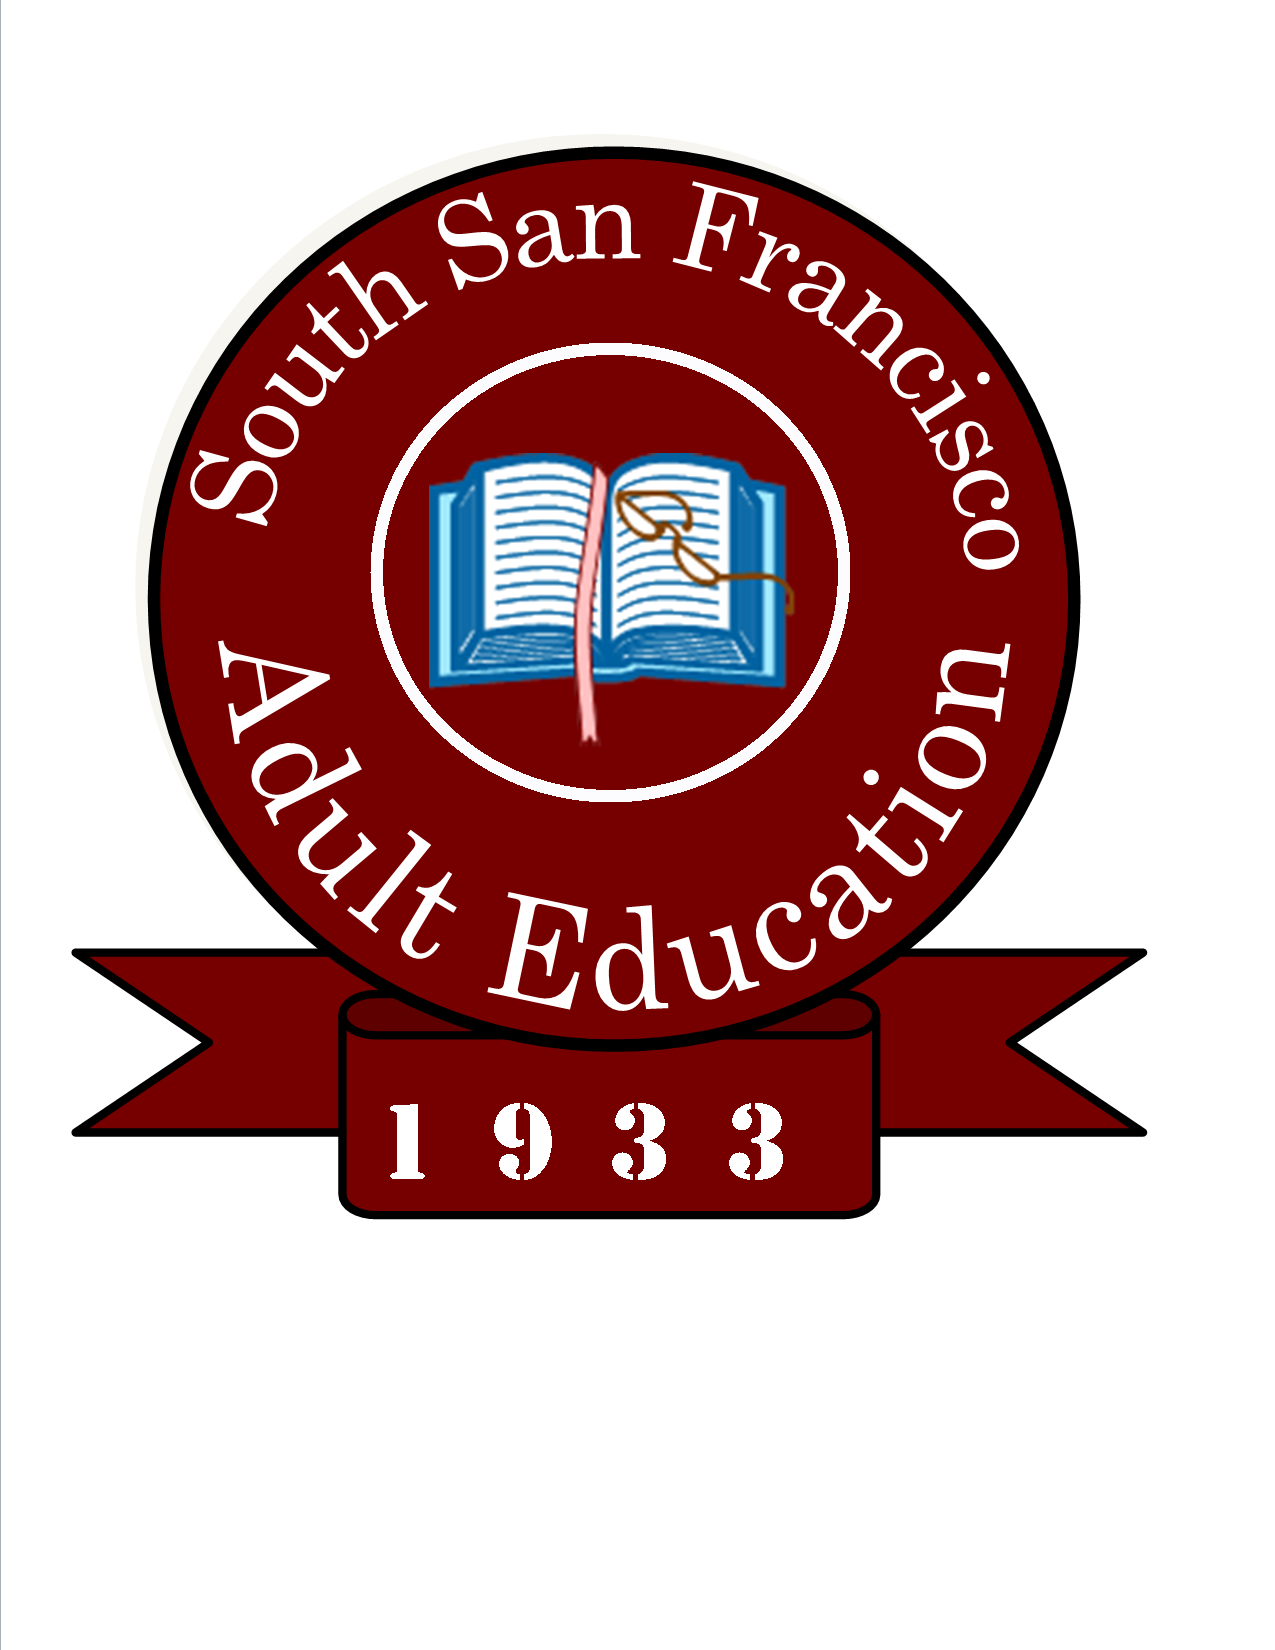 South San Francisco Adult Education